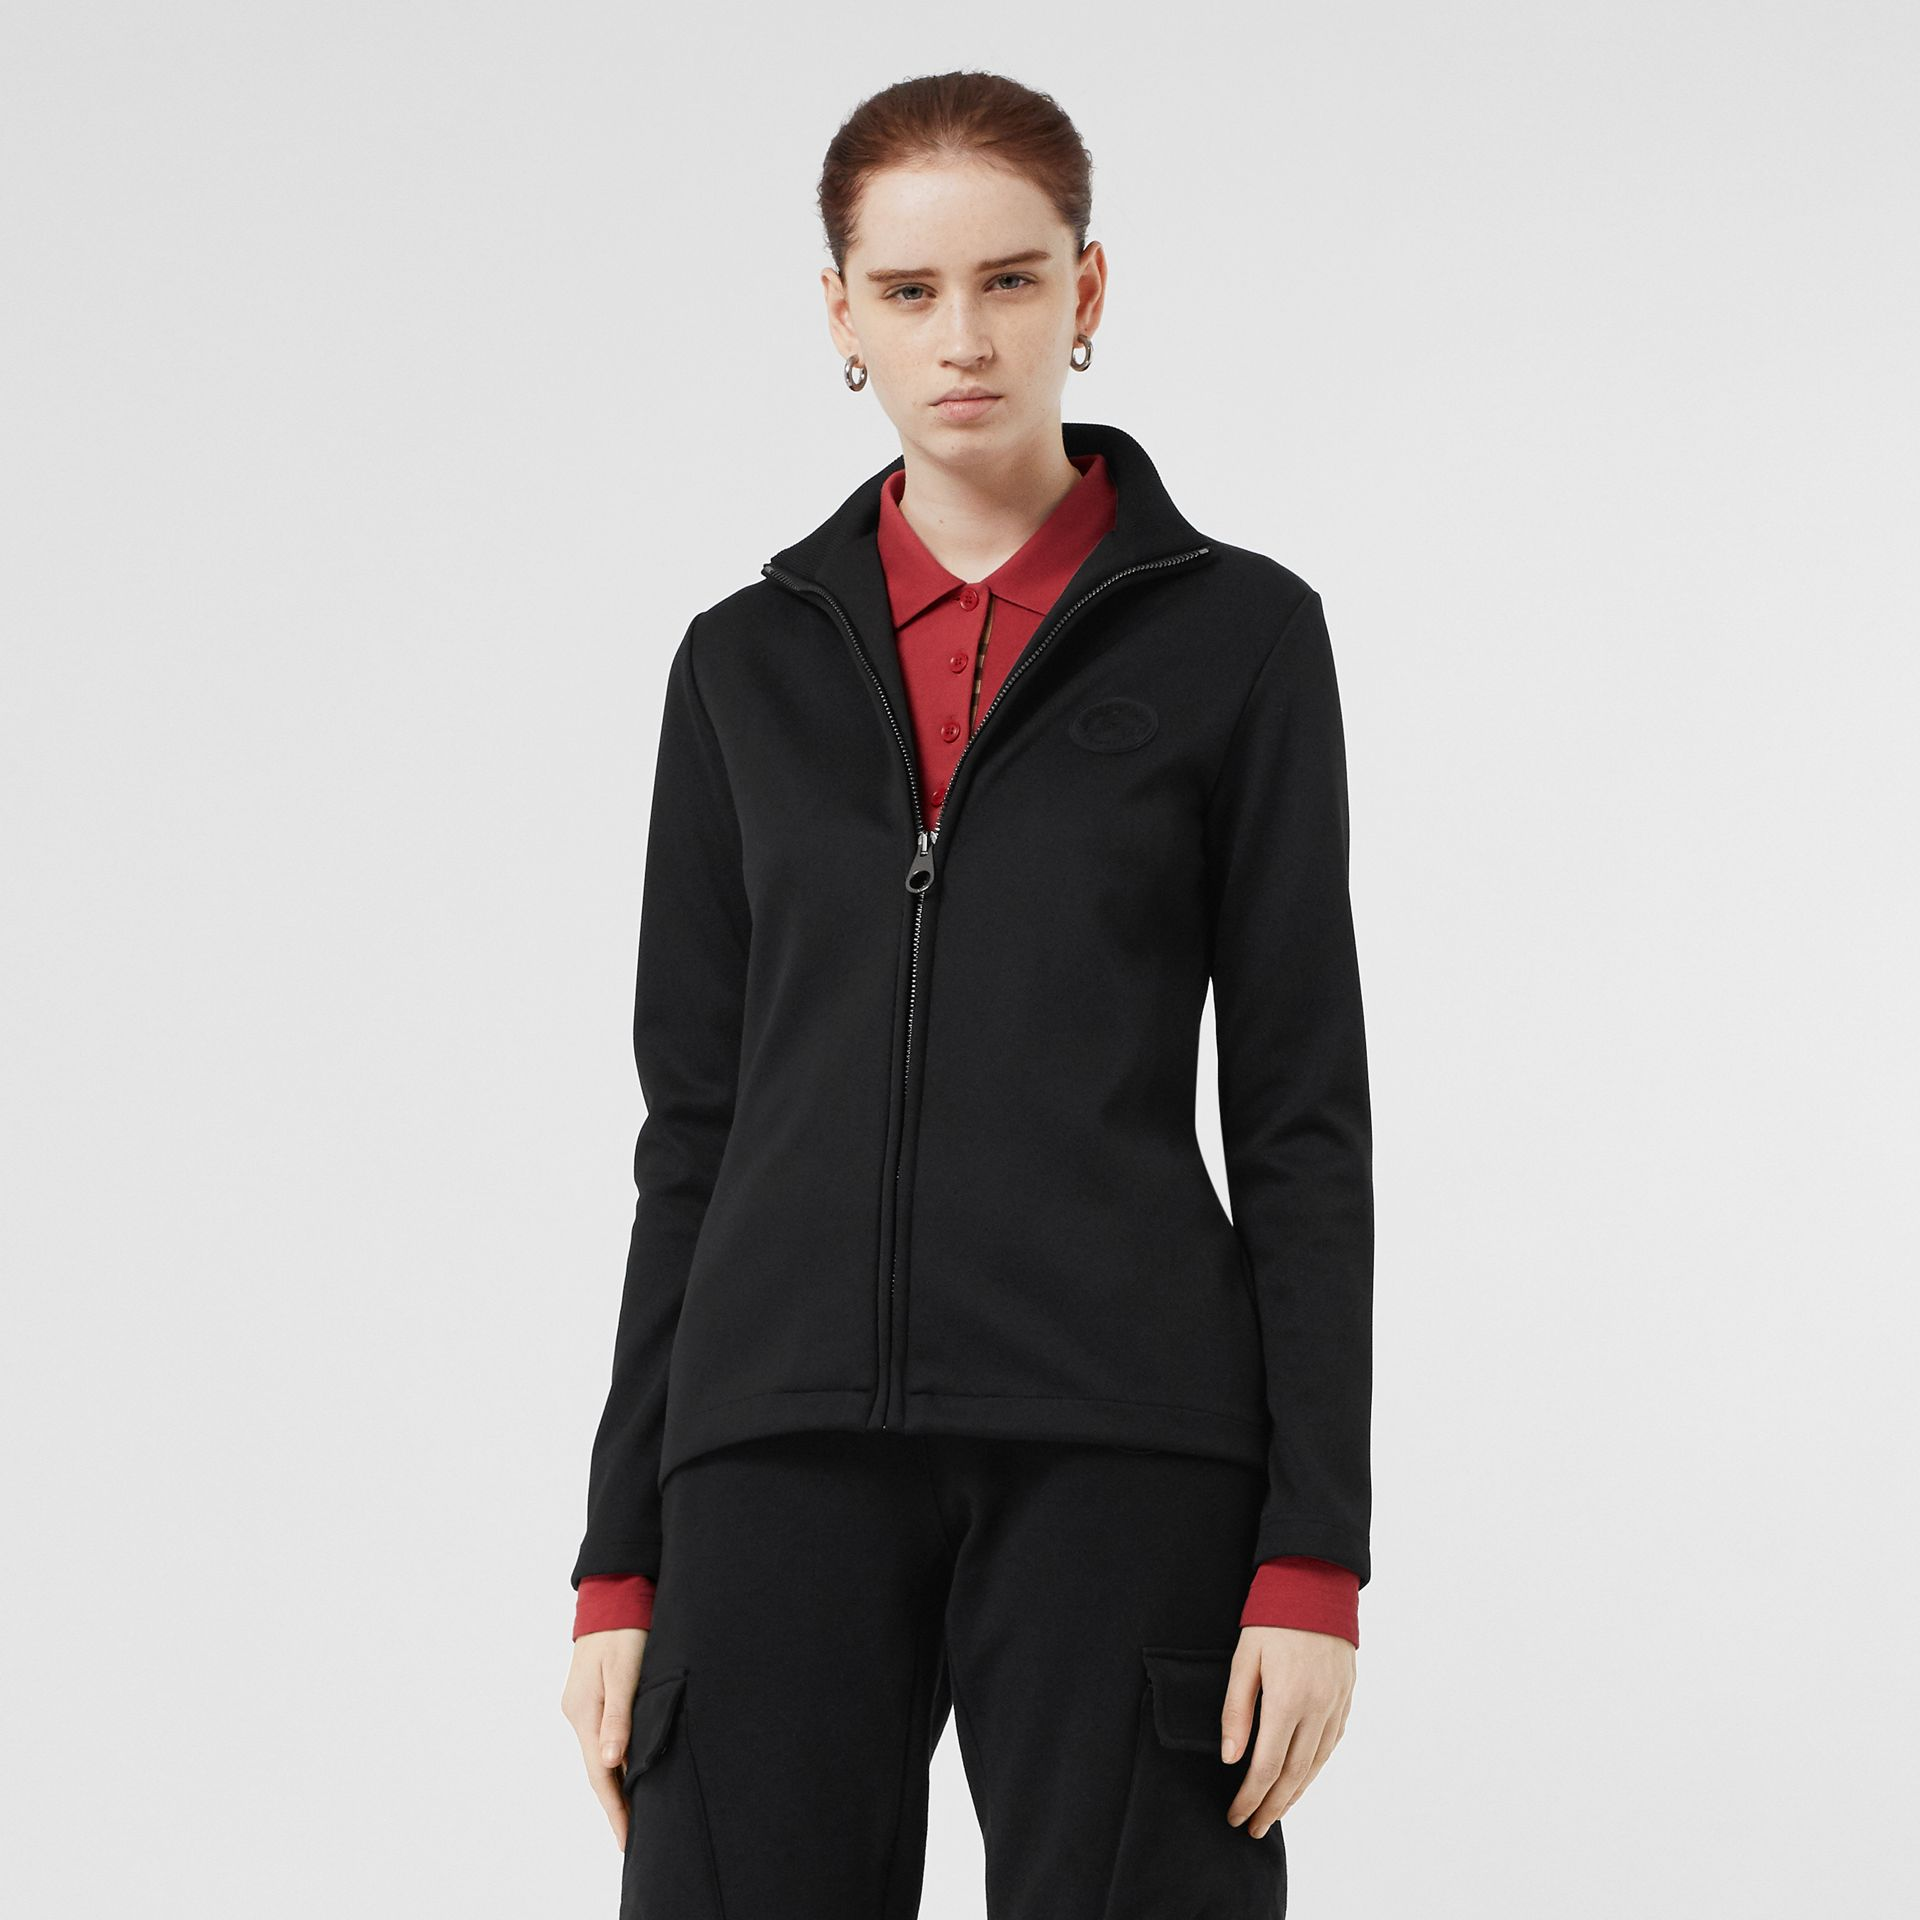 Crest Detail Funnel-neck Track Top in Black - Women | Burberry Australia - gallery image 4